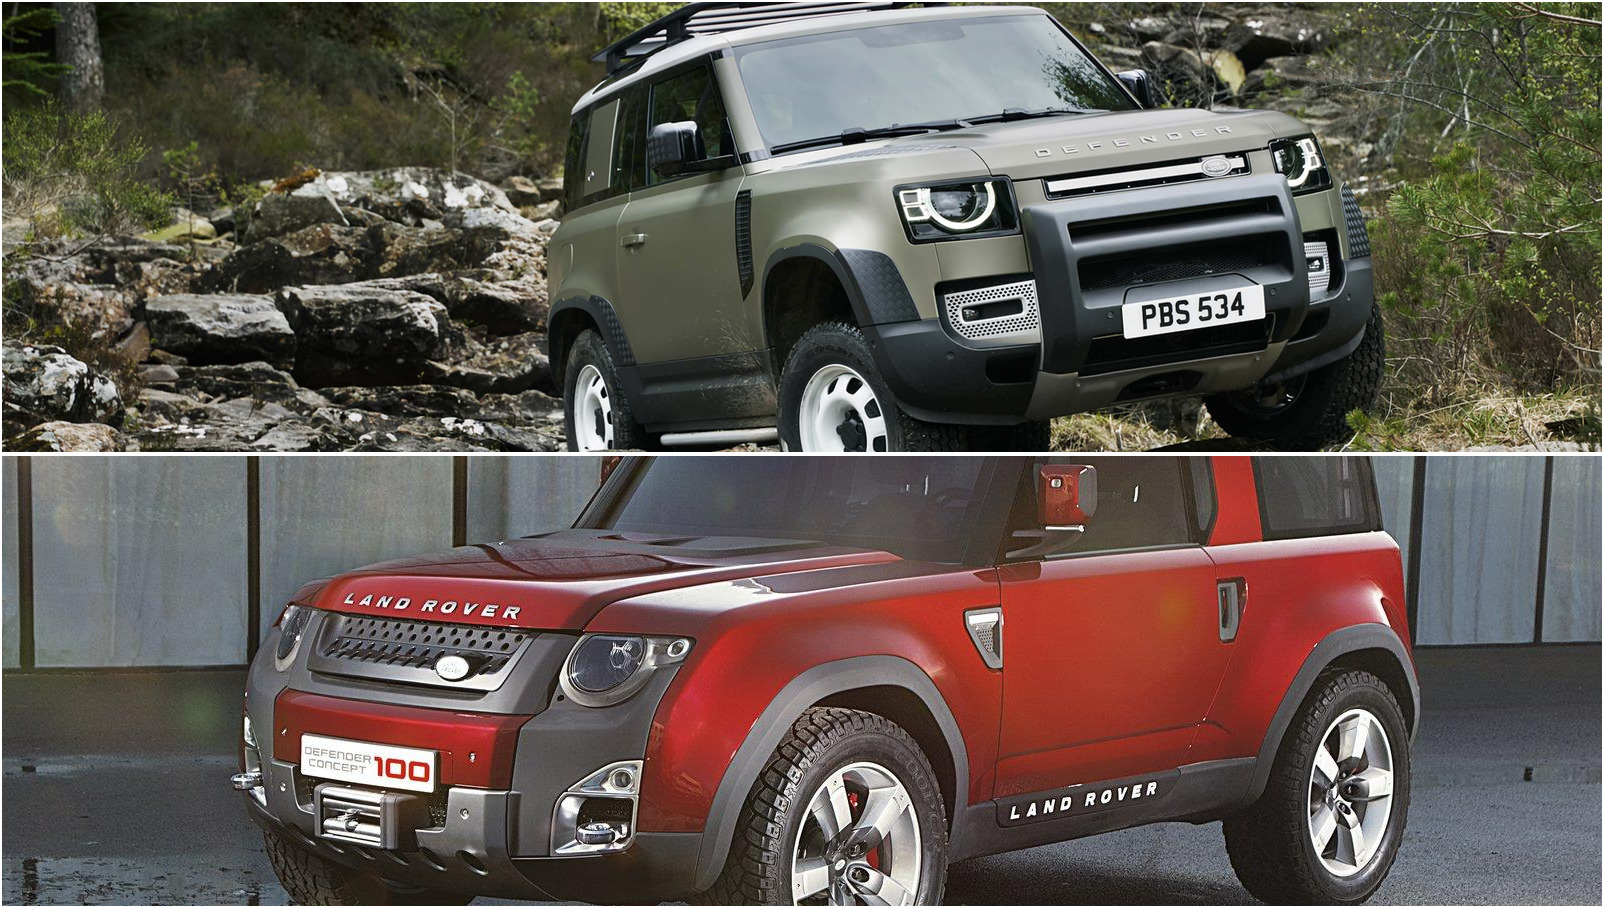 But the concept was ill-received, so Land Rover operated some important changes to its formula